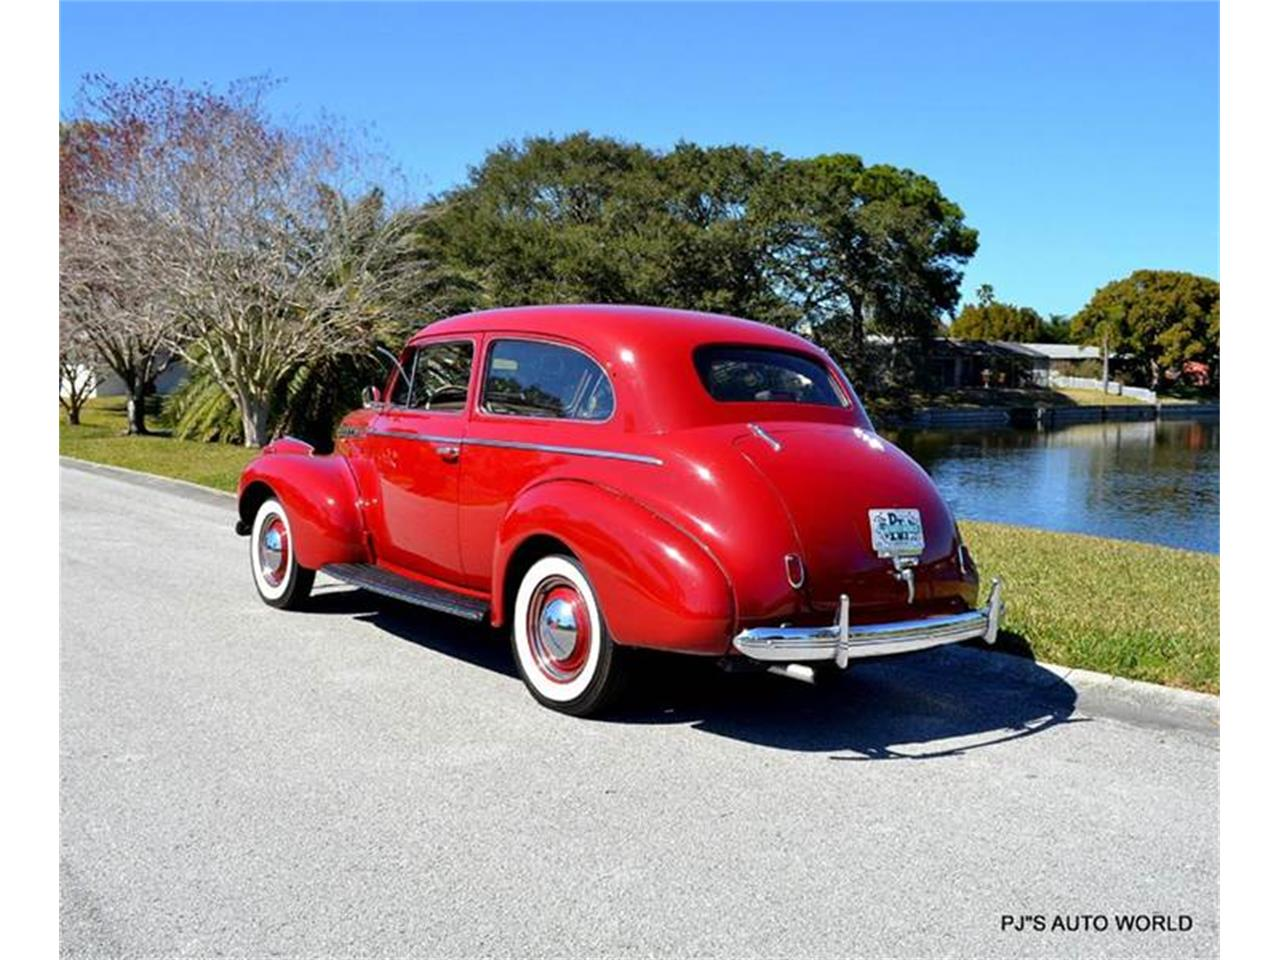 Large Picture of 1940 Super Deluxe located in Florida - $27,900.00 Offered by PJ's Auto World - GLMM